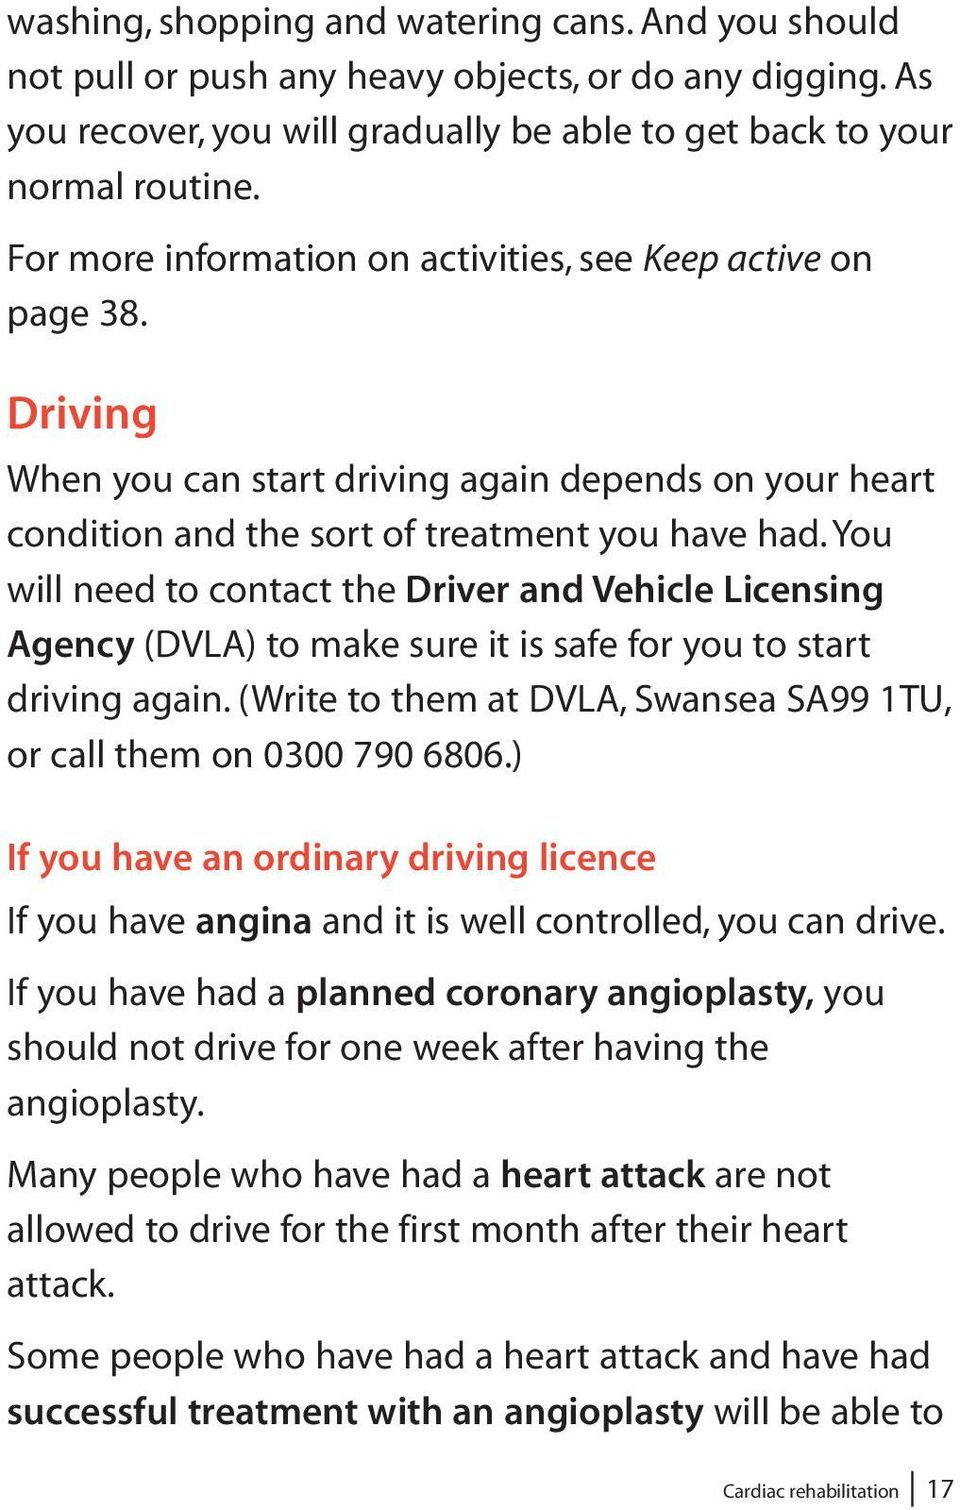 You will need to contact the Driver and Vehicle Licensing Agency (DVLA) to make sure it is safe for you to start driving again. (Write to them at DVLA, Swansea SA99 1TU, or call them on 0300 790 6806.